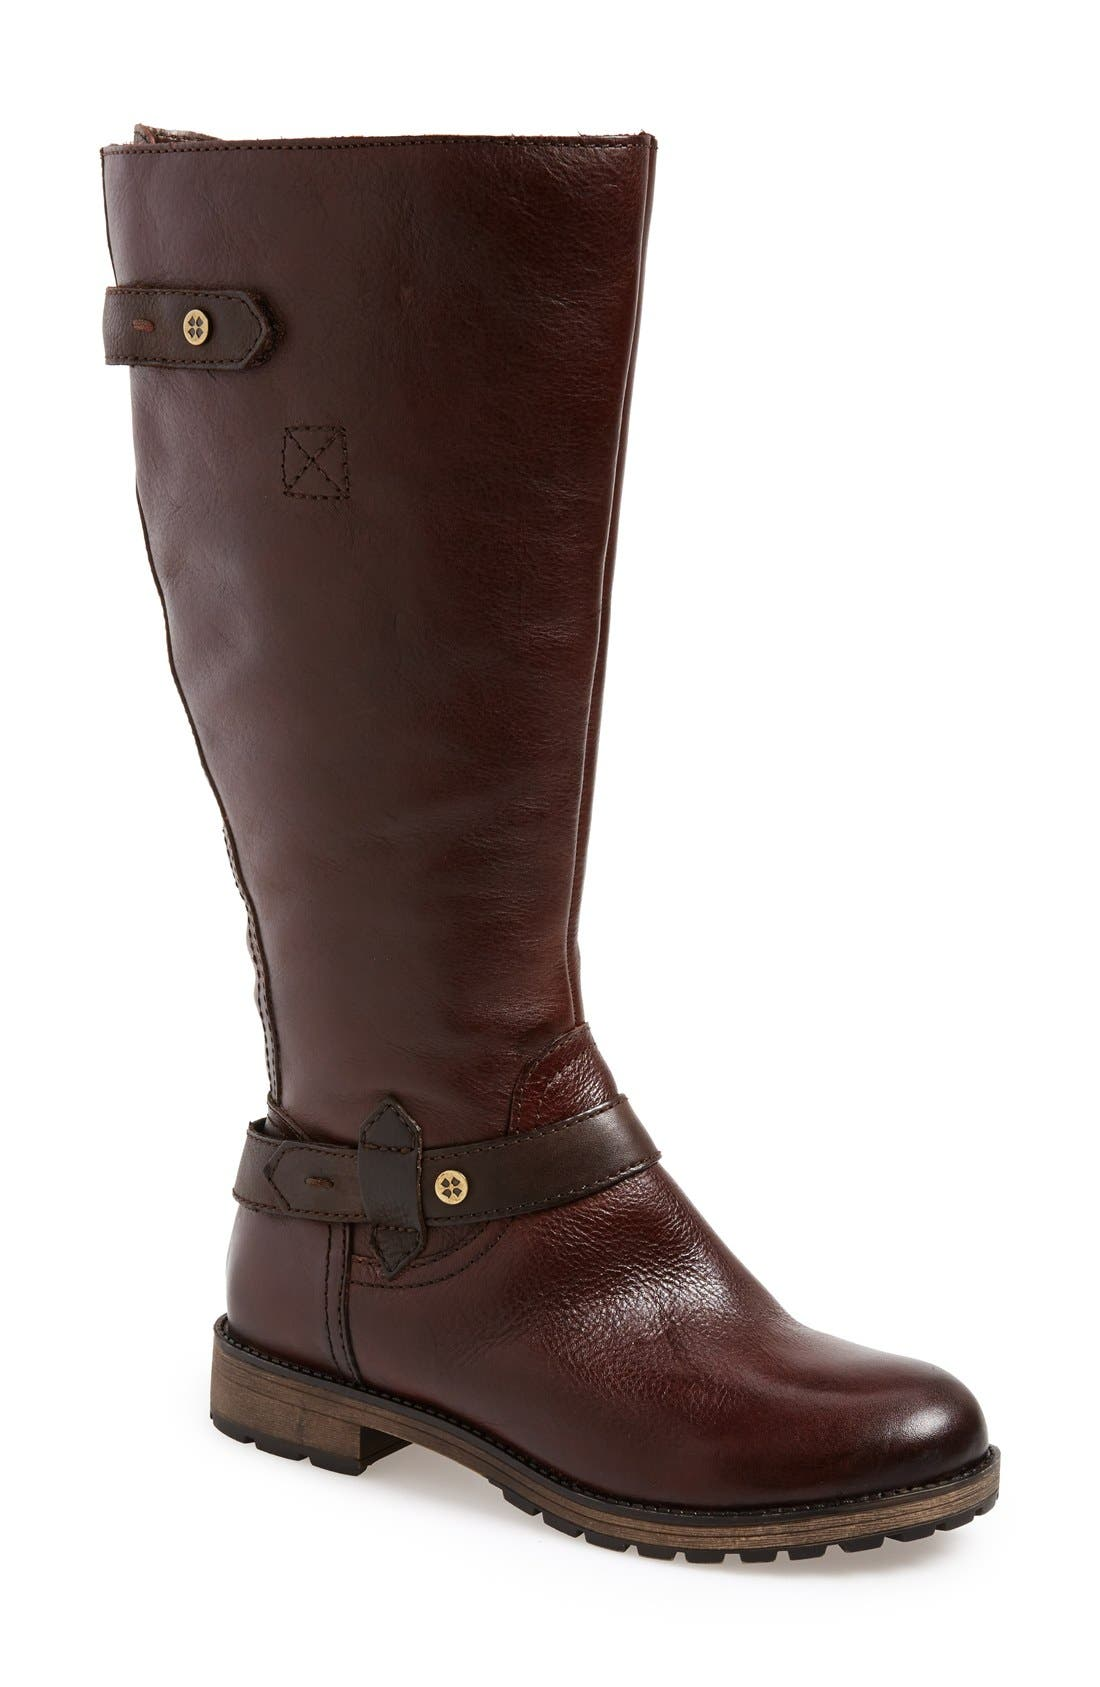 'Tanita' Boot,                             Main thumbnail 1, color,                             Tan Leather Wide Calf